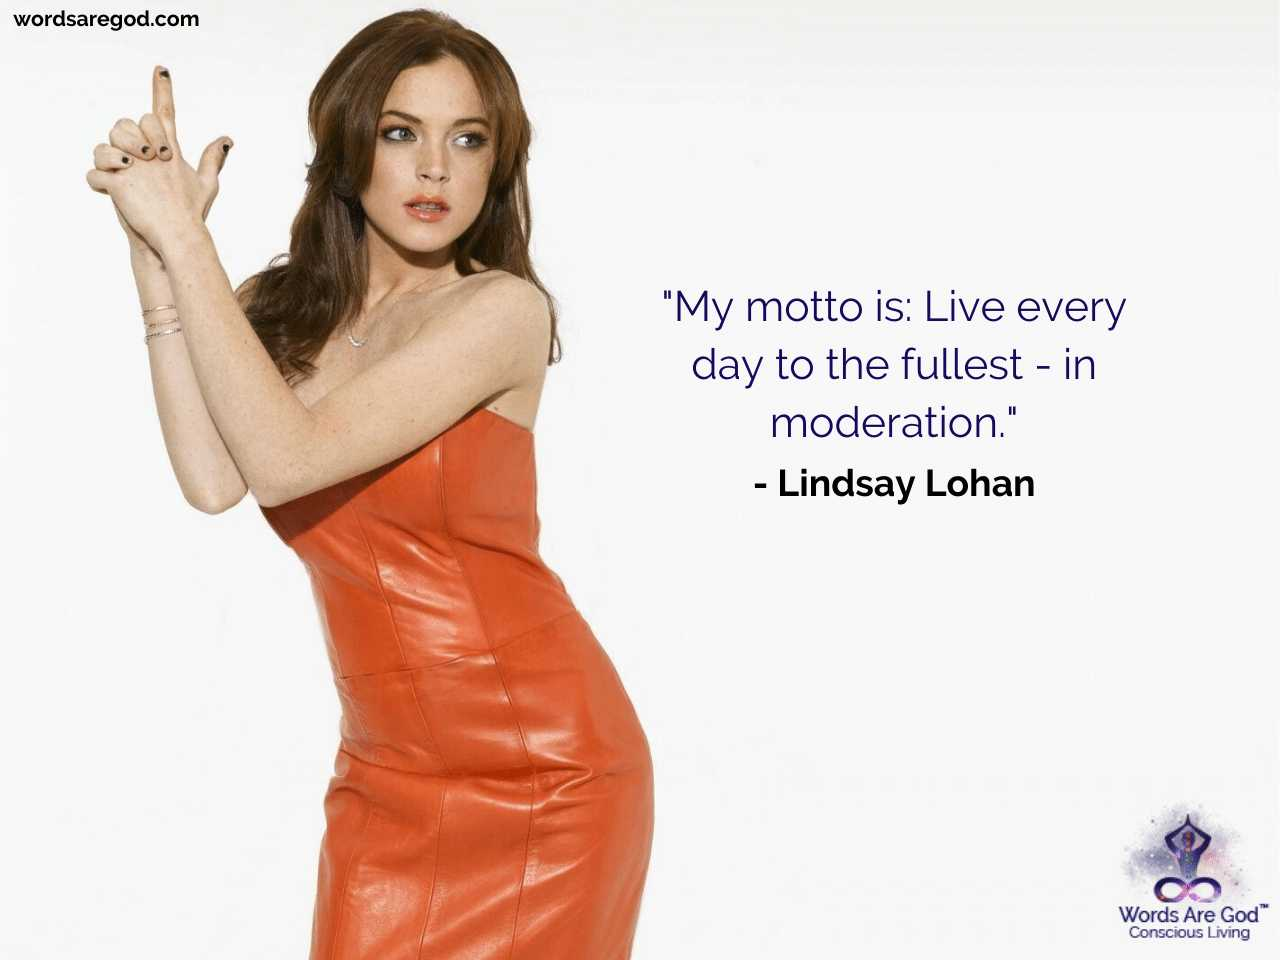 Lindsay Lohan Best Quotes